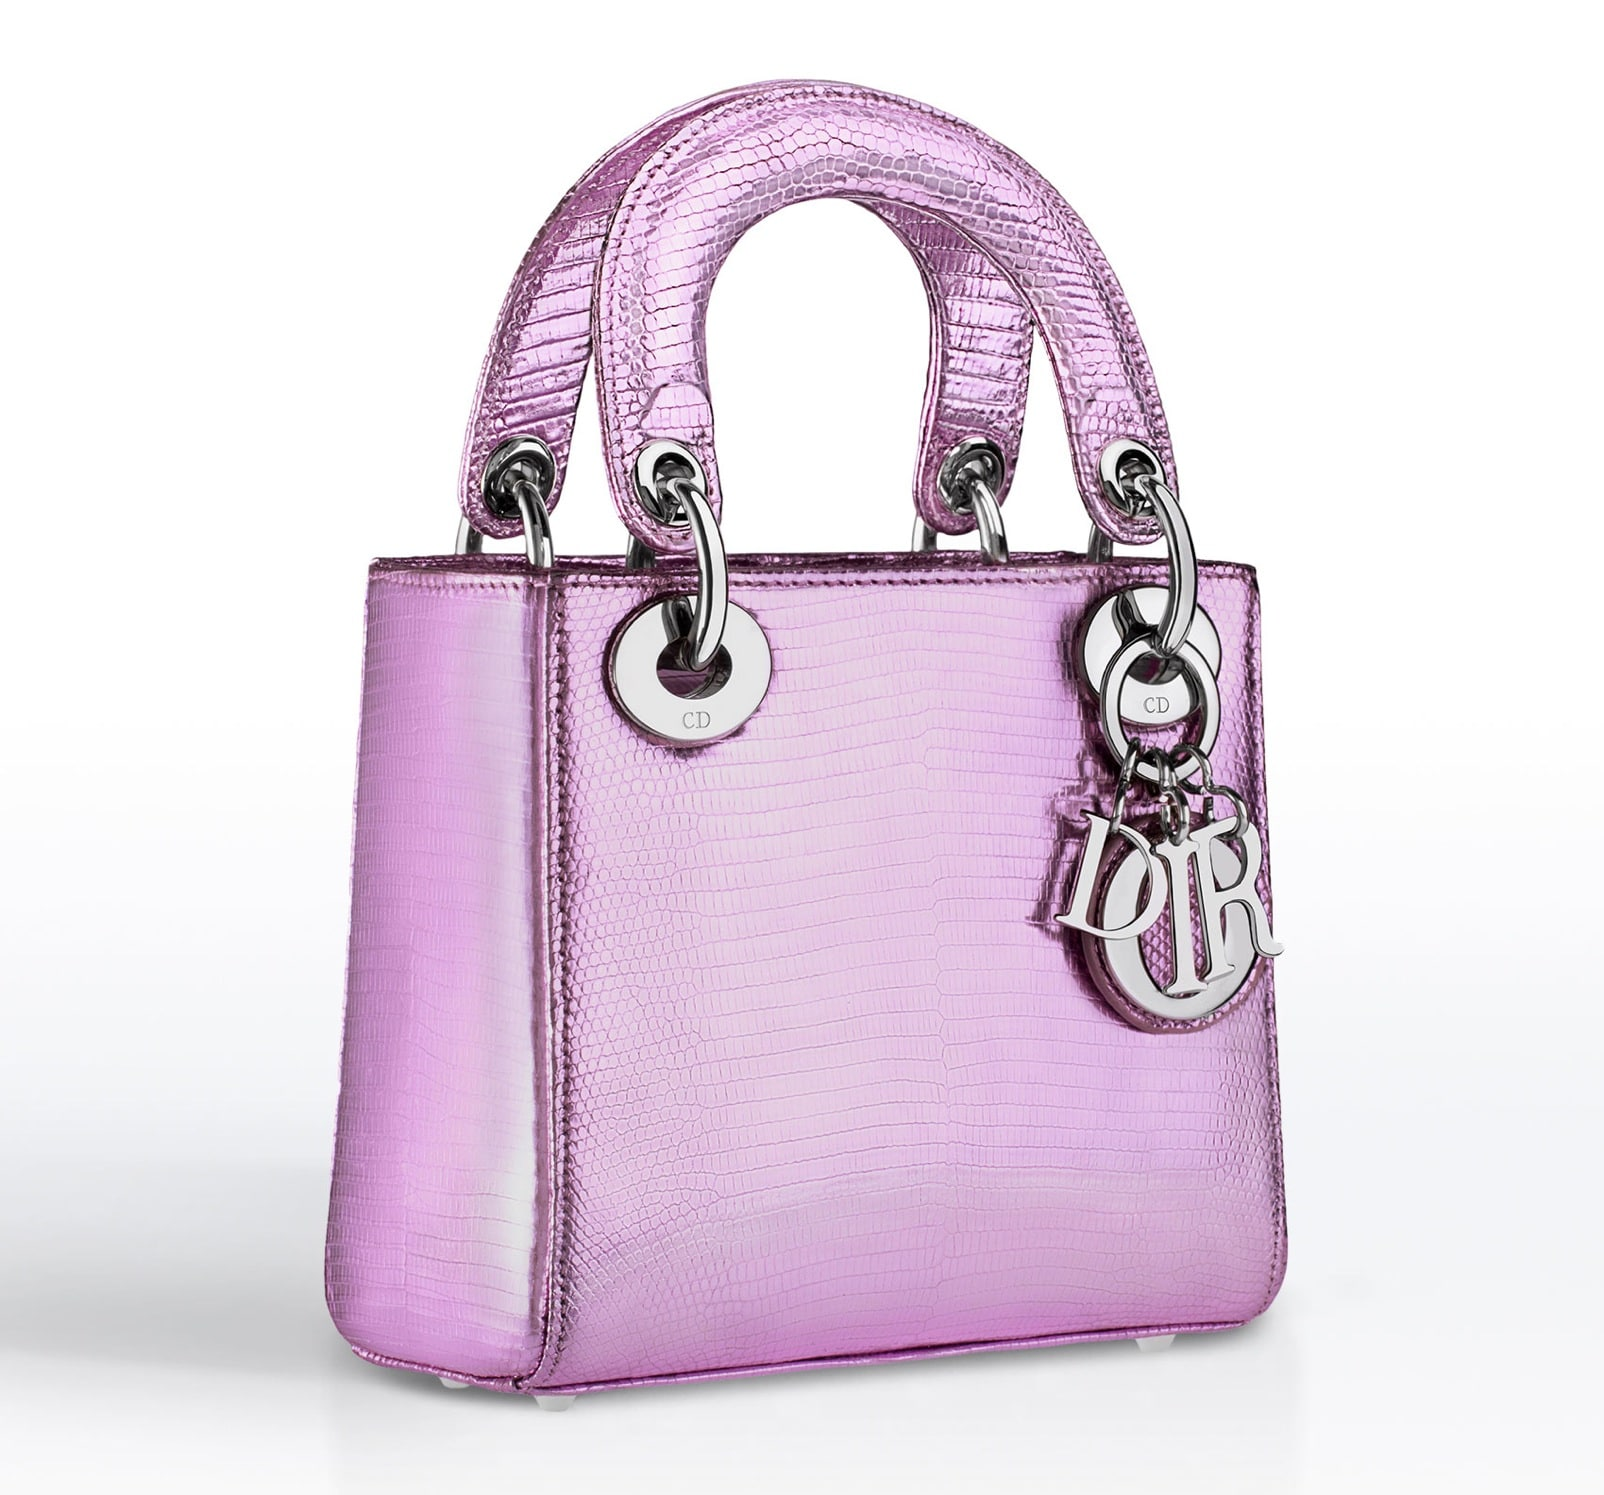 bd6dd729929b Dior Anemone Metallic Lizard Lady Dior Small Bag - Cruise 2015